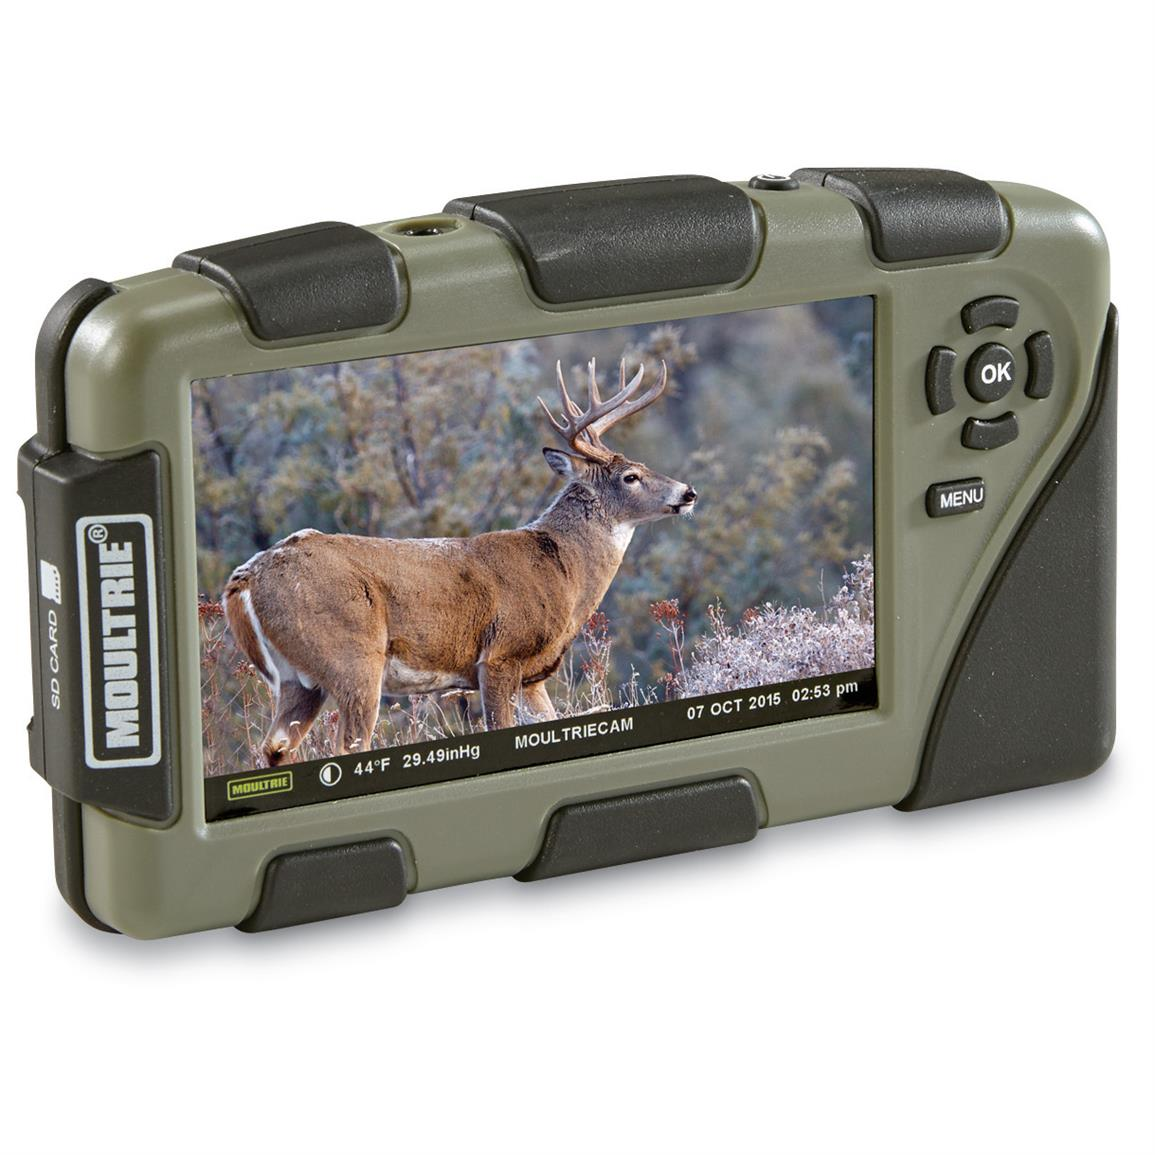 Moultrie Photo and Video Viewer